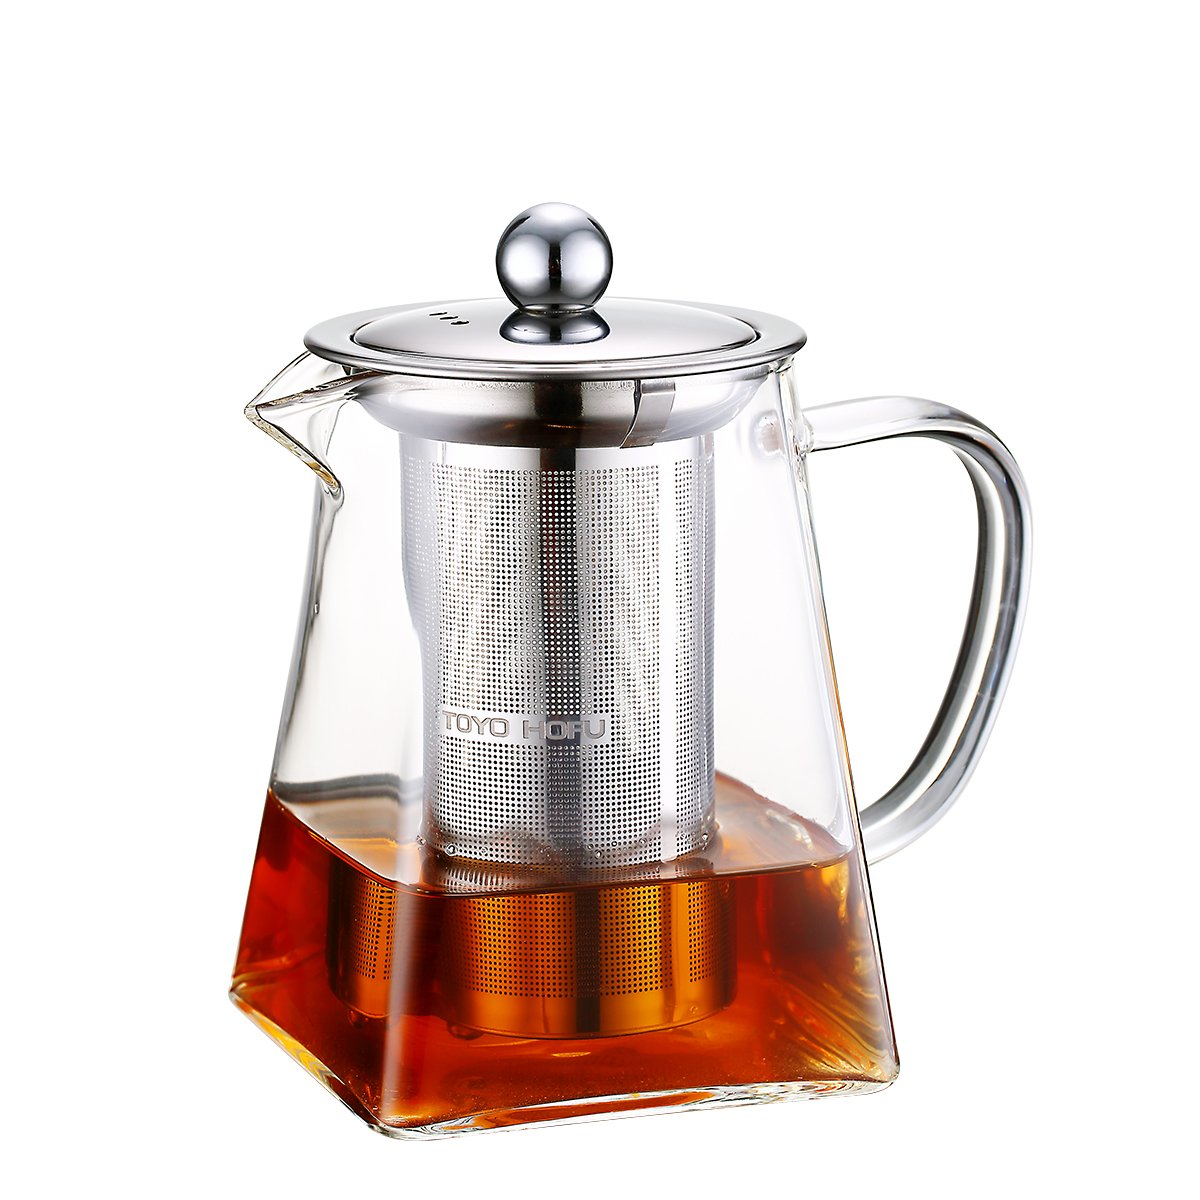 Toyo Hofu Small Clear High Borosilicate Glass Teapot with Removable 304 Stainless Steel Infuser, Heat Resistant Loose Leaf Tea Pot,Stovetop Safe, 600 ml/20 Ounce